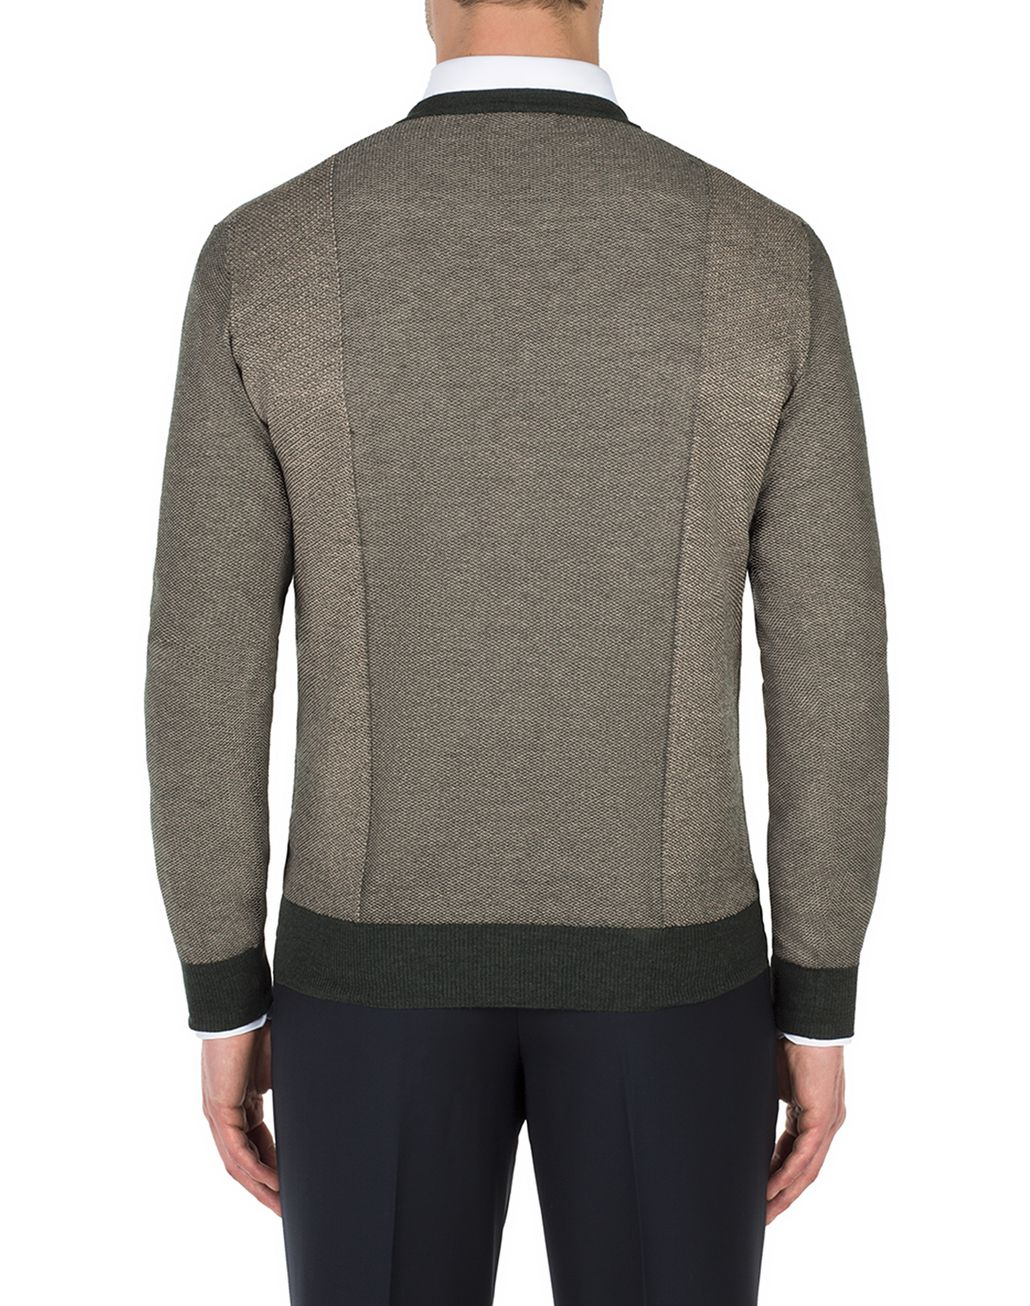 BRIONI Thyme Green and Sand V-neck Micro Jacquard Sweater   Knitwear [*** pickupInStoreShippingNotGuaranteed_info ***] d